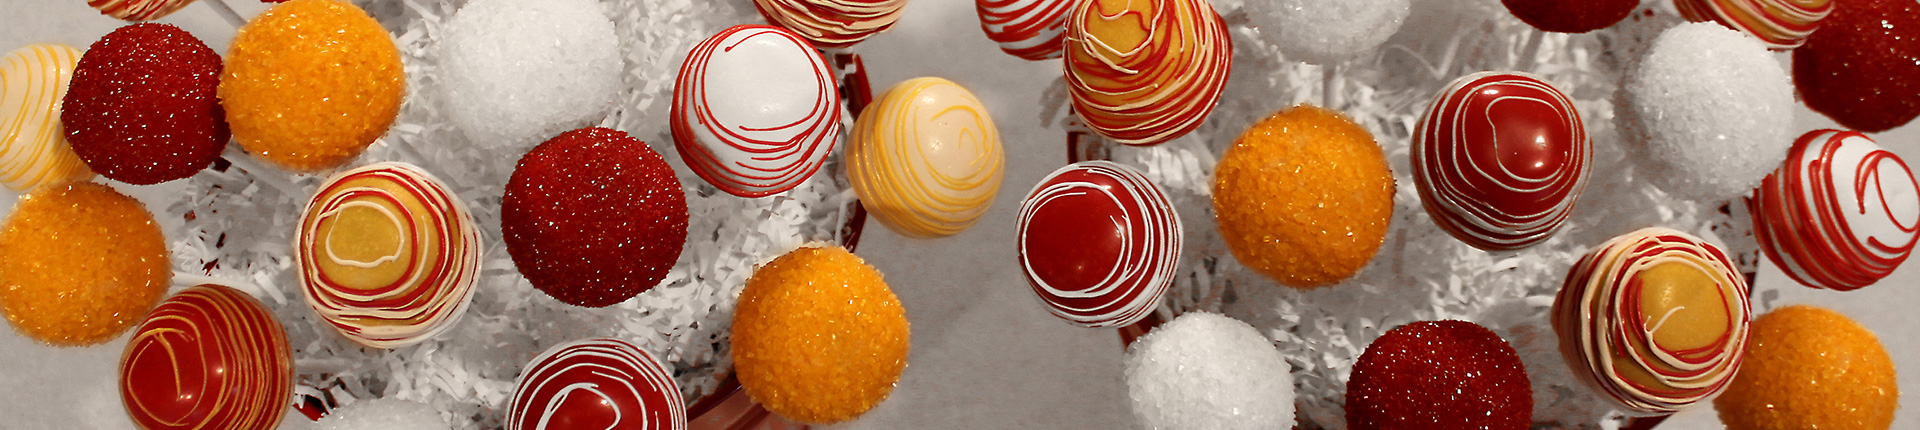 CakePops-Chiefs-SweetSelections-Slider-1